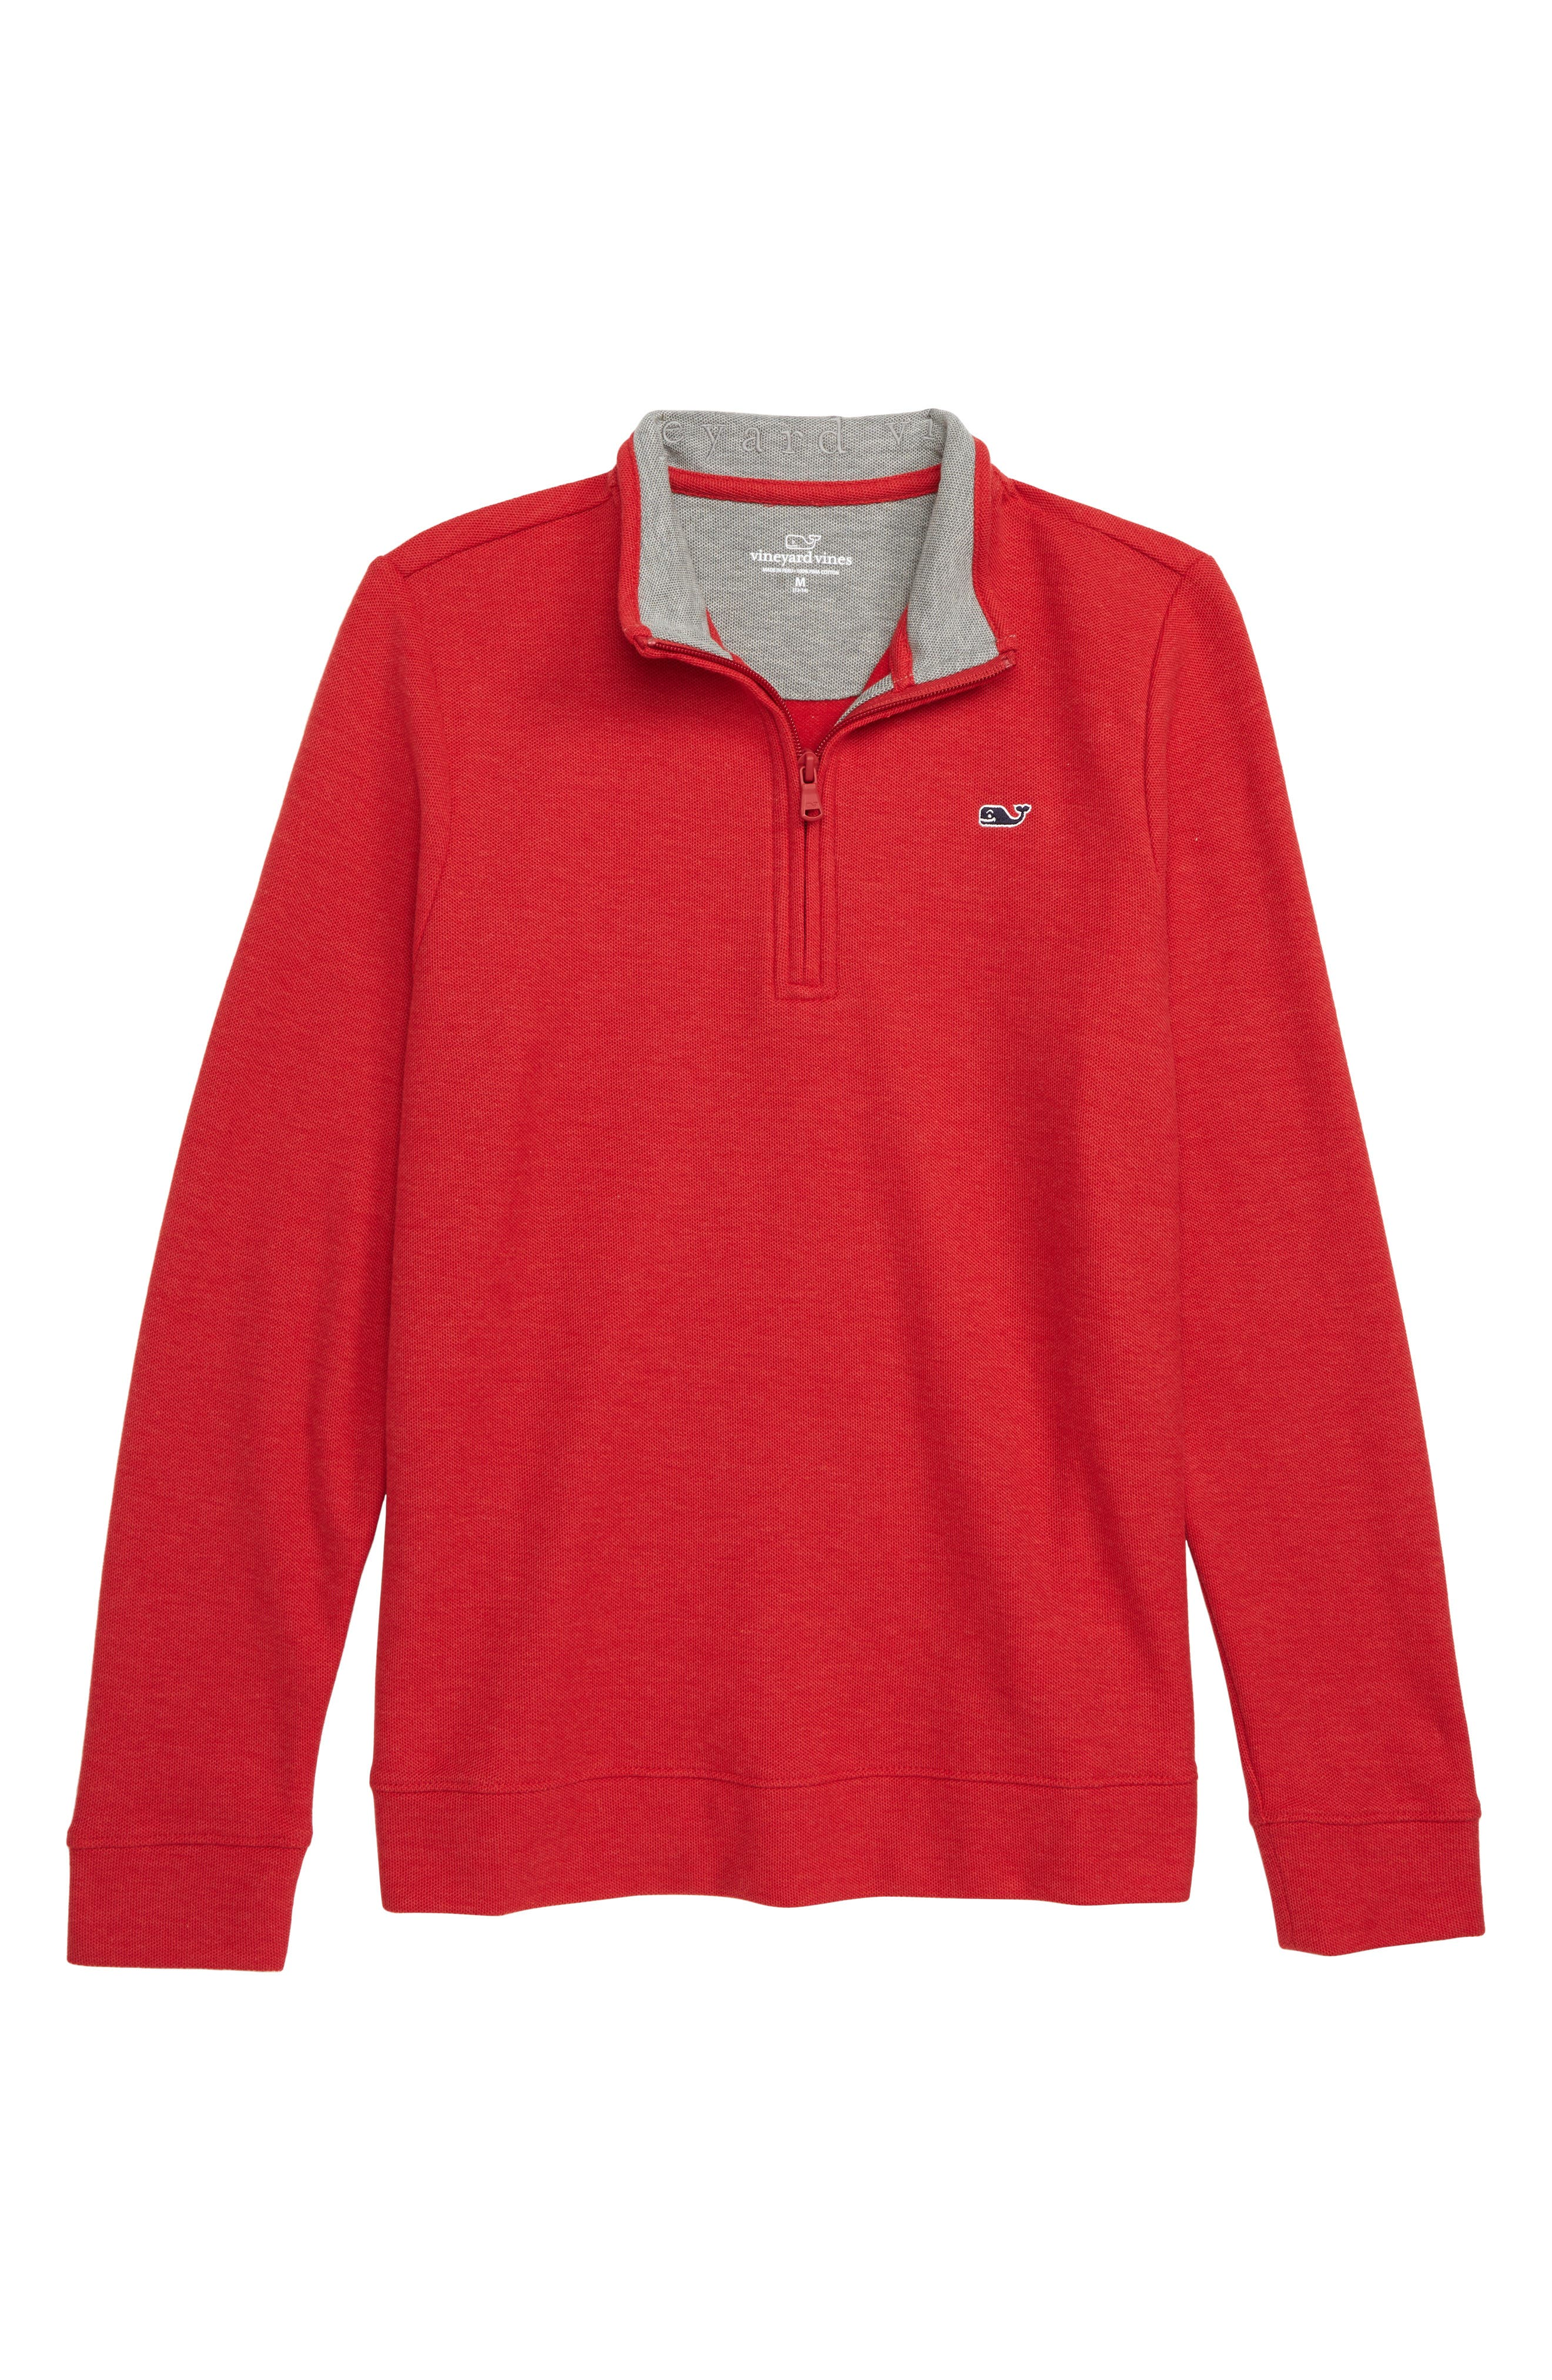 Quarter Zip Sweater,                             Main thumbnail 1, color,                             CALYPSO RED